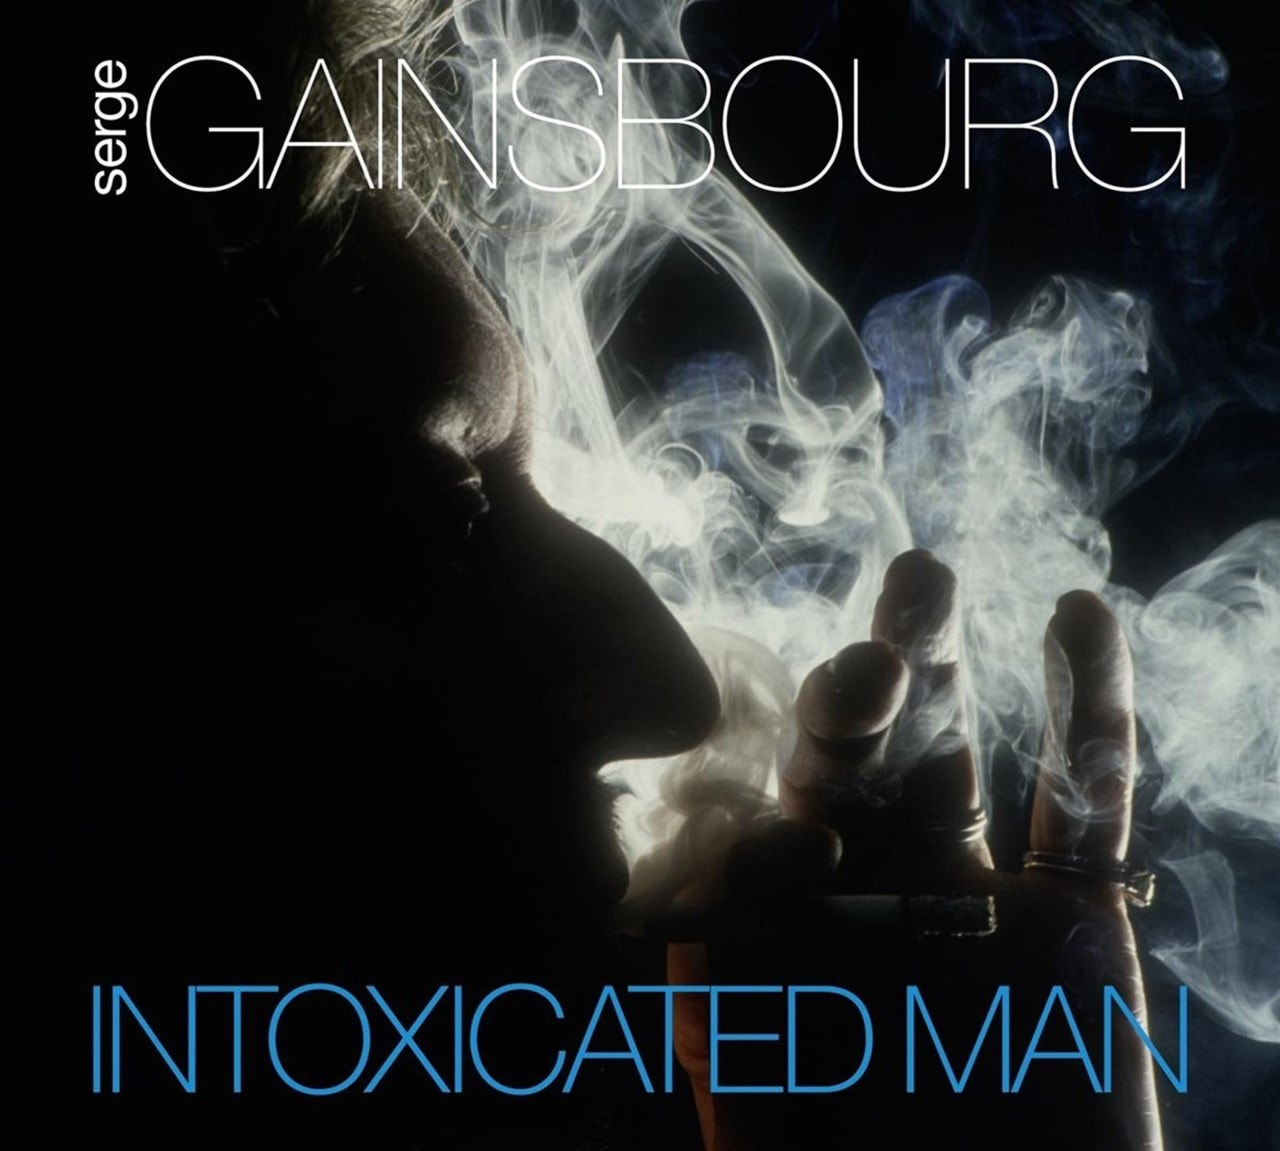 Intoxicated Man - 1